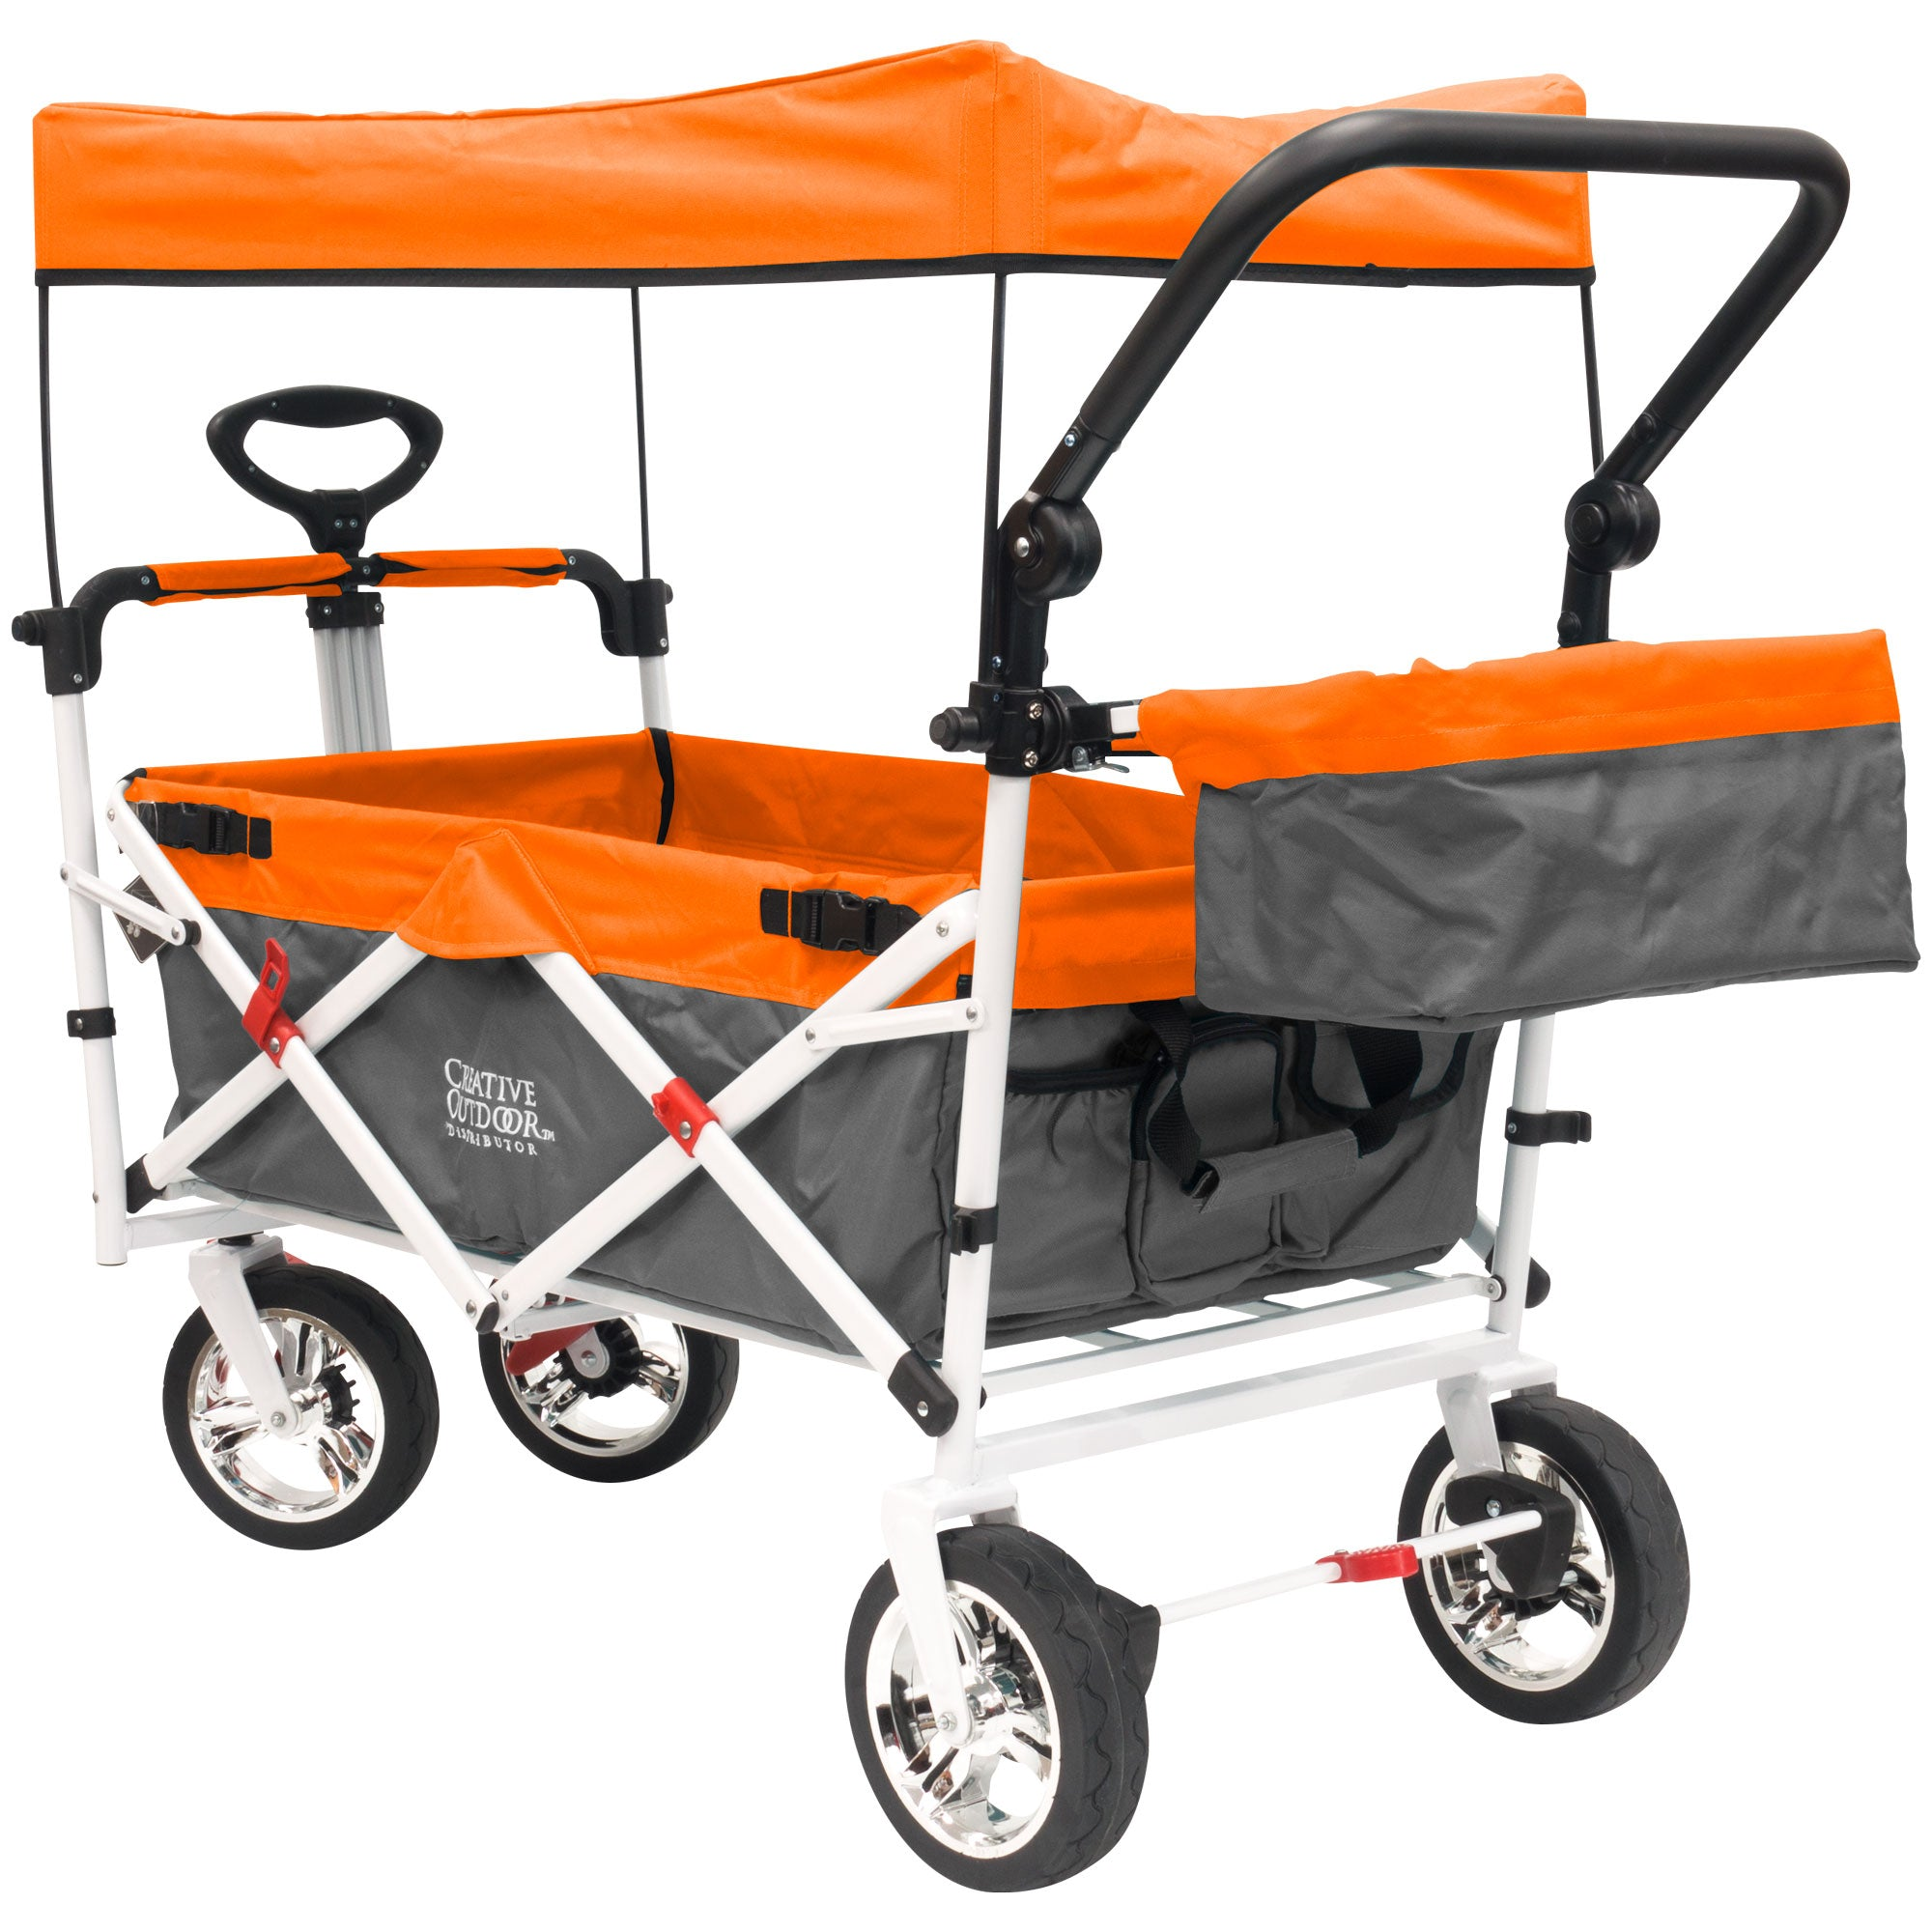 Push Pull SILVER SERIES PLUS Folding Wagon Stroller with Canopy | Orange